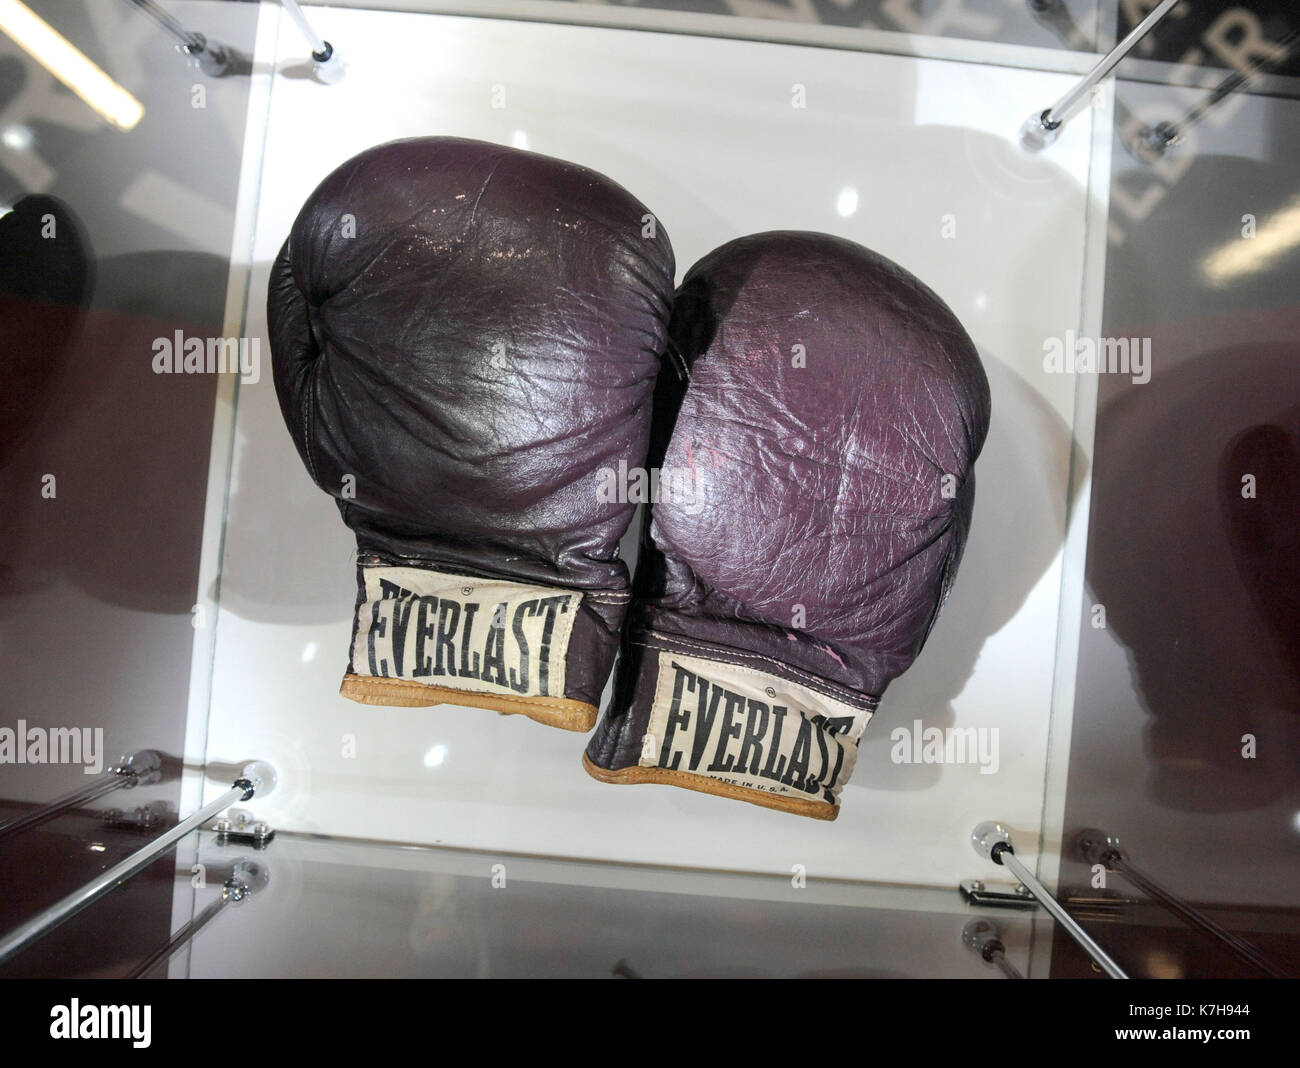 Photo Must Be Credited ©Kate Green/Alpha Press 079965 03/03/2016 Muhammad Ali's gloves used to fight Joe Frazier from the Fight of the Century at Madison Square Garden in 1971 at the I Am The Greatest: Muhammad Ali Exhibition Preview at The O2 in London. - Stock Image